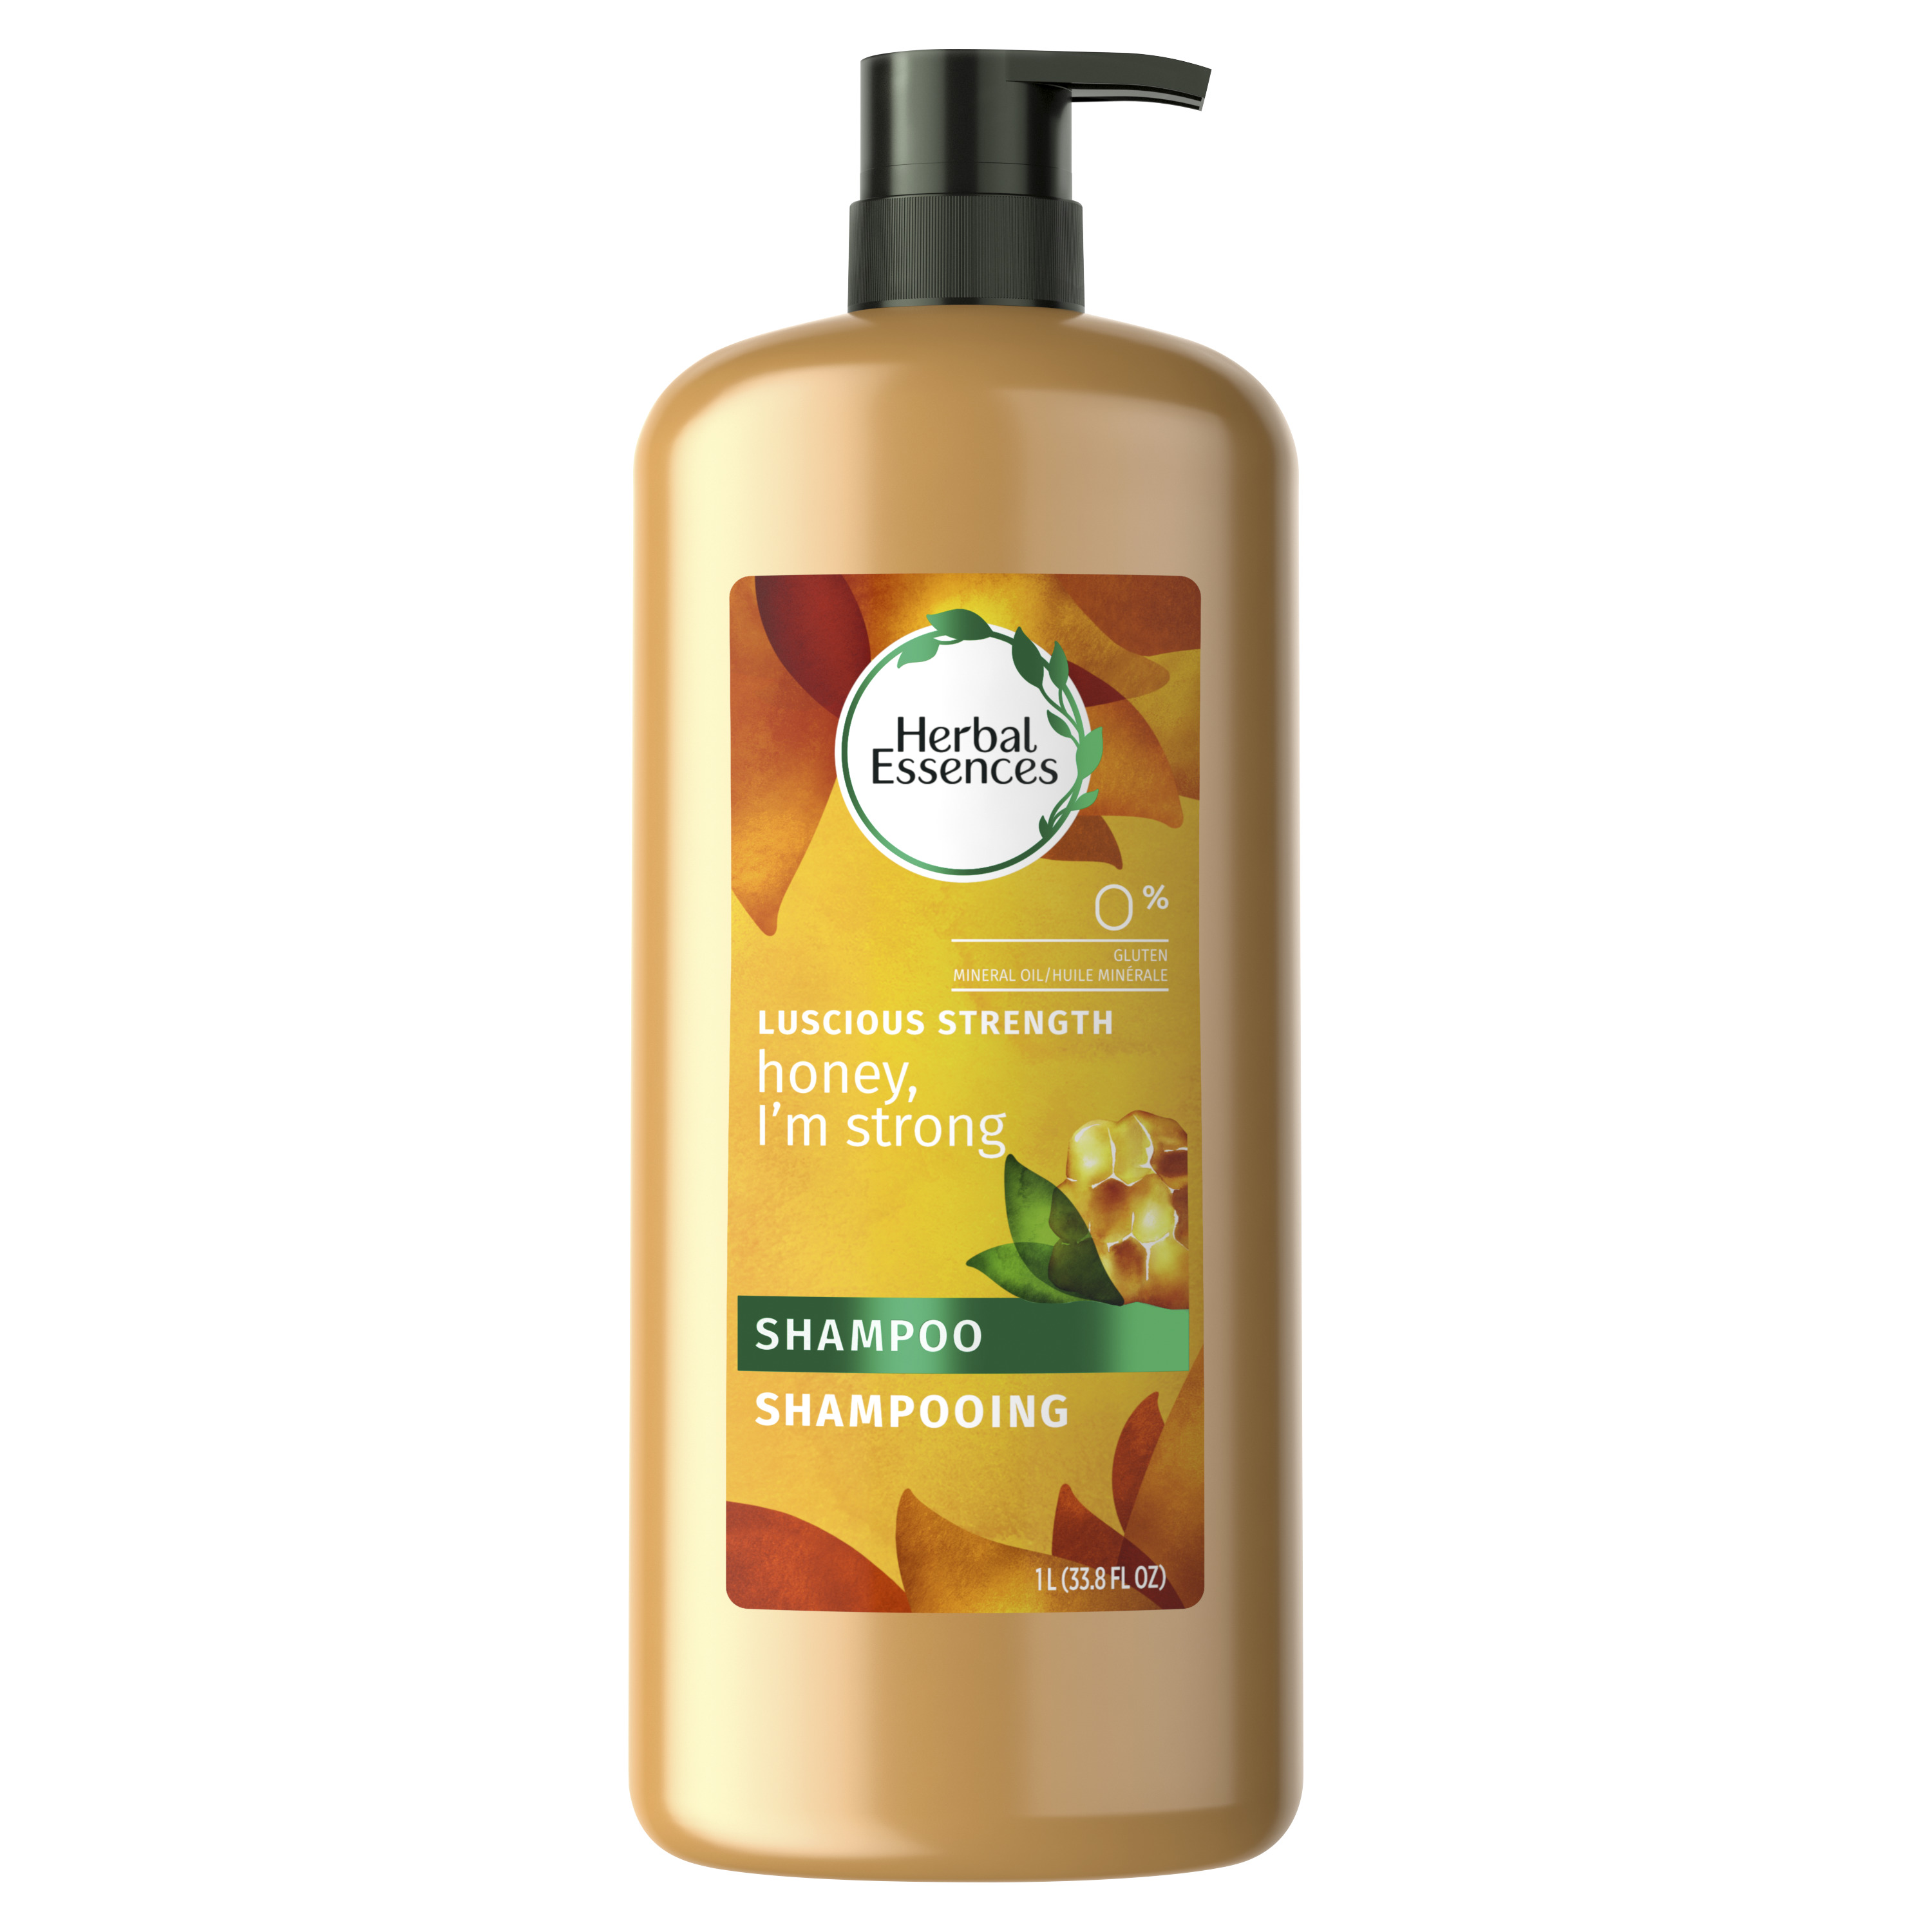 Herbal Essences Honey I'm Strong Strengthening Shampoo with Honey Essences, 33.8 fl oz